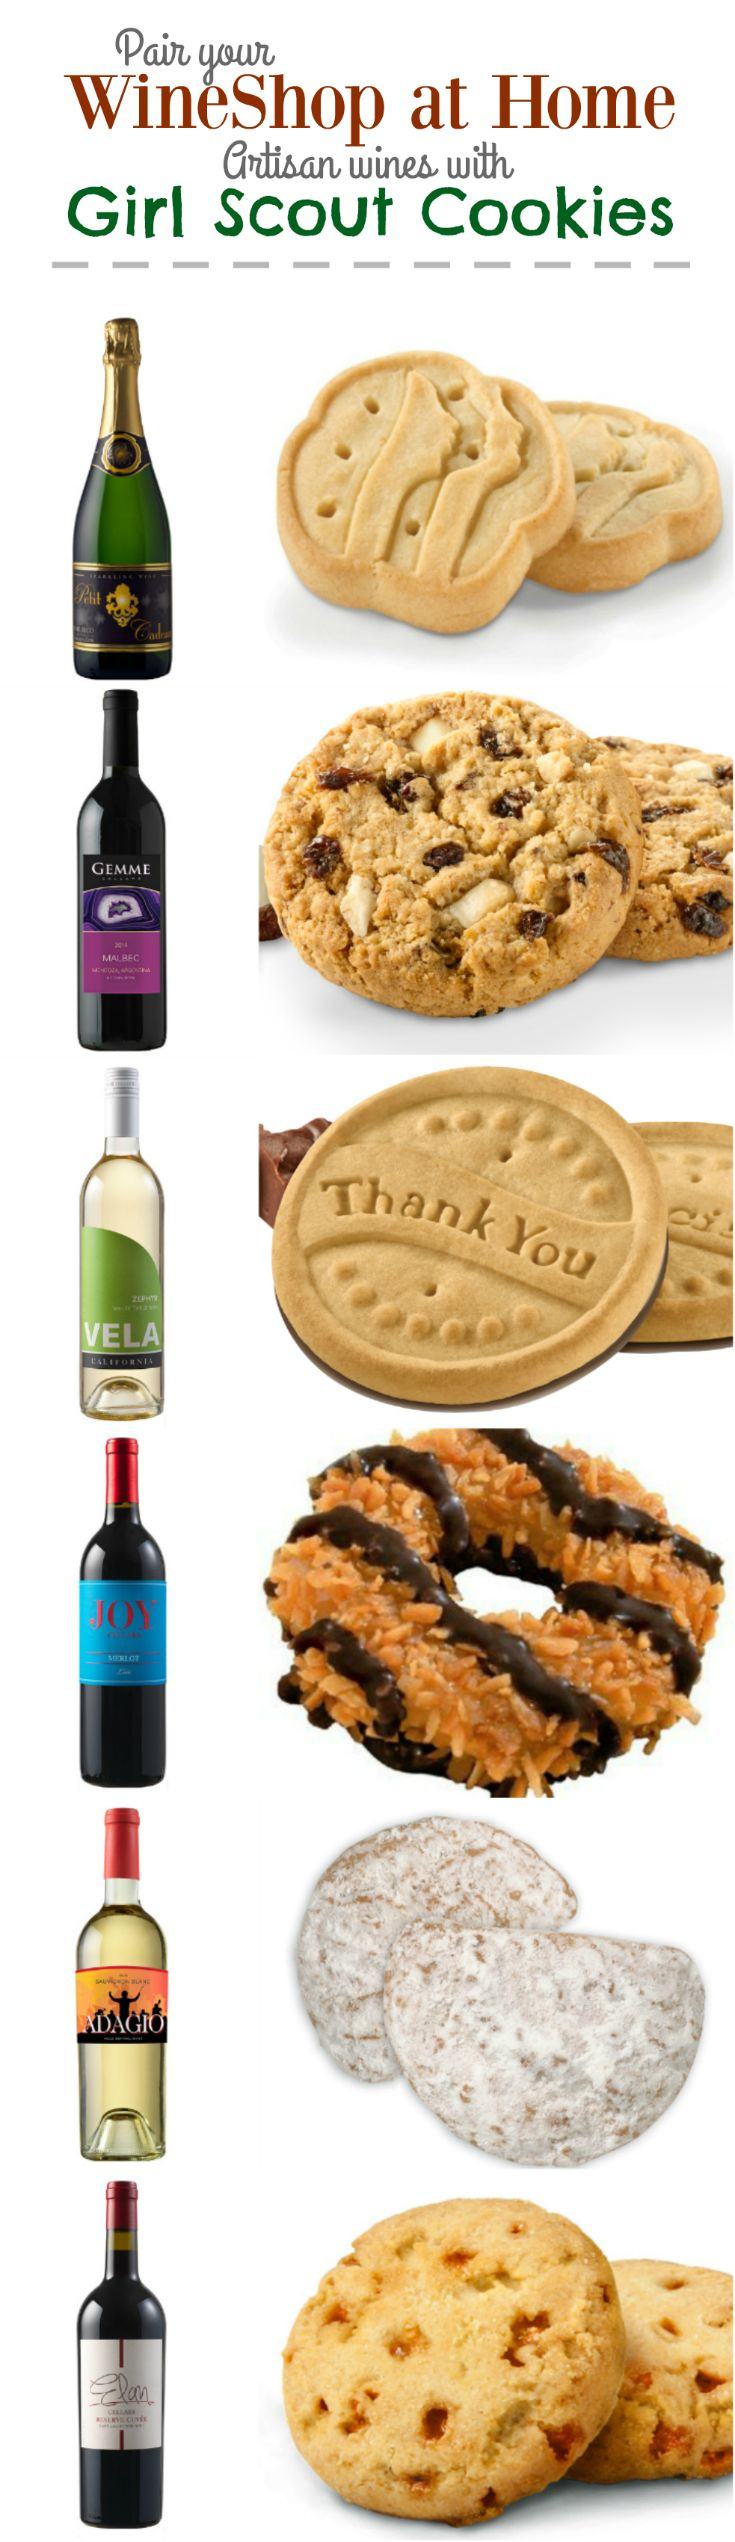 Girl Scout Cookies and WINE? YES, PLEASE! - Caffeine and Cabernet